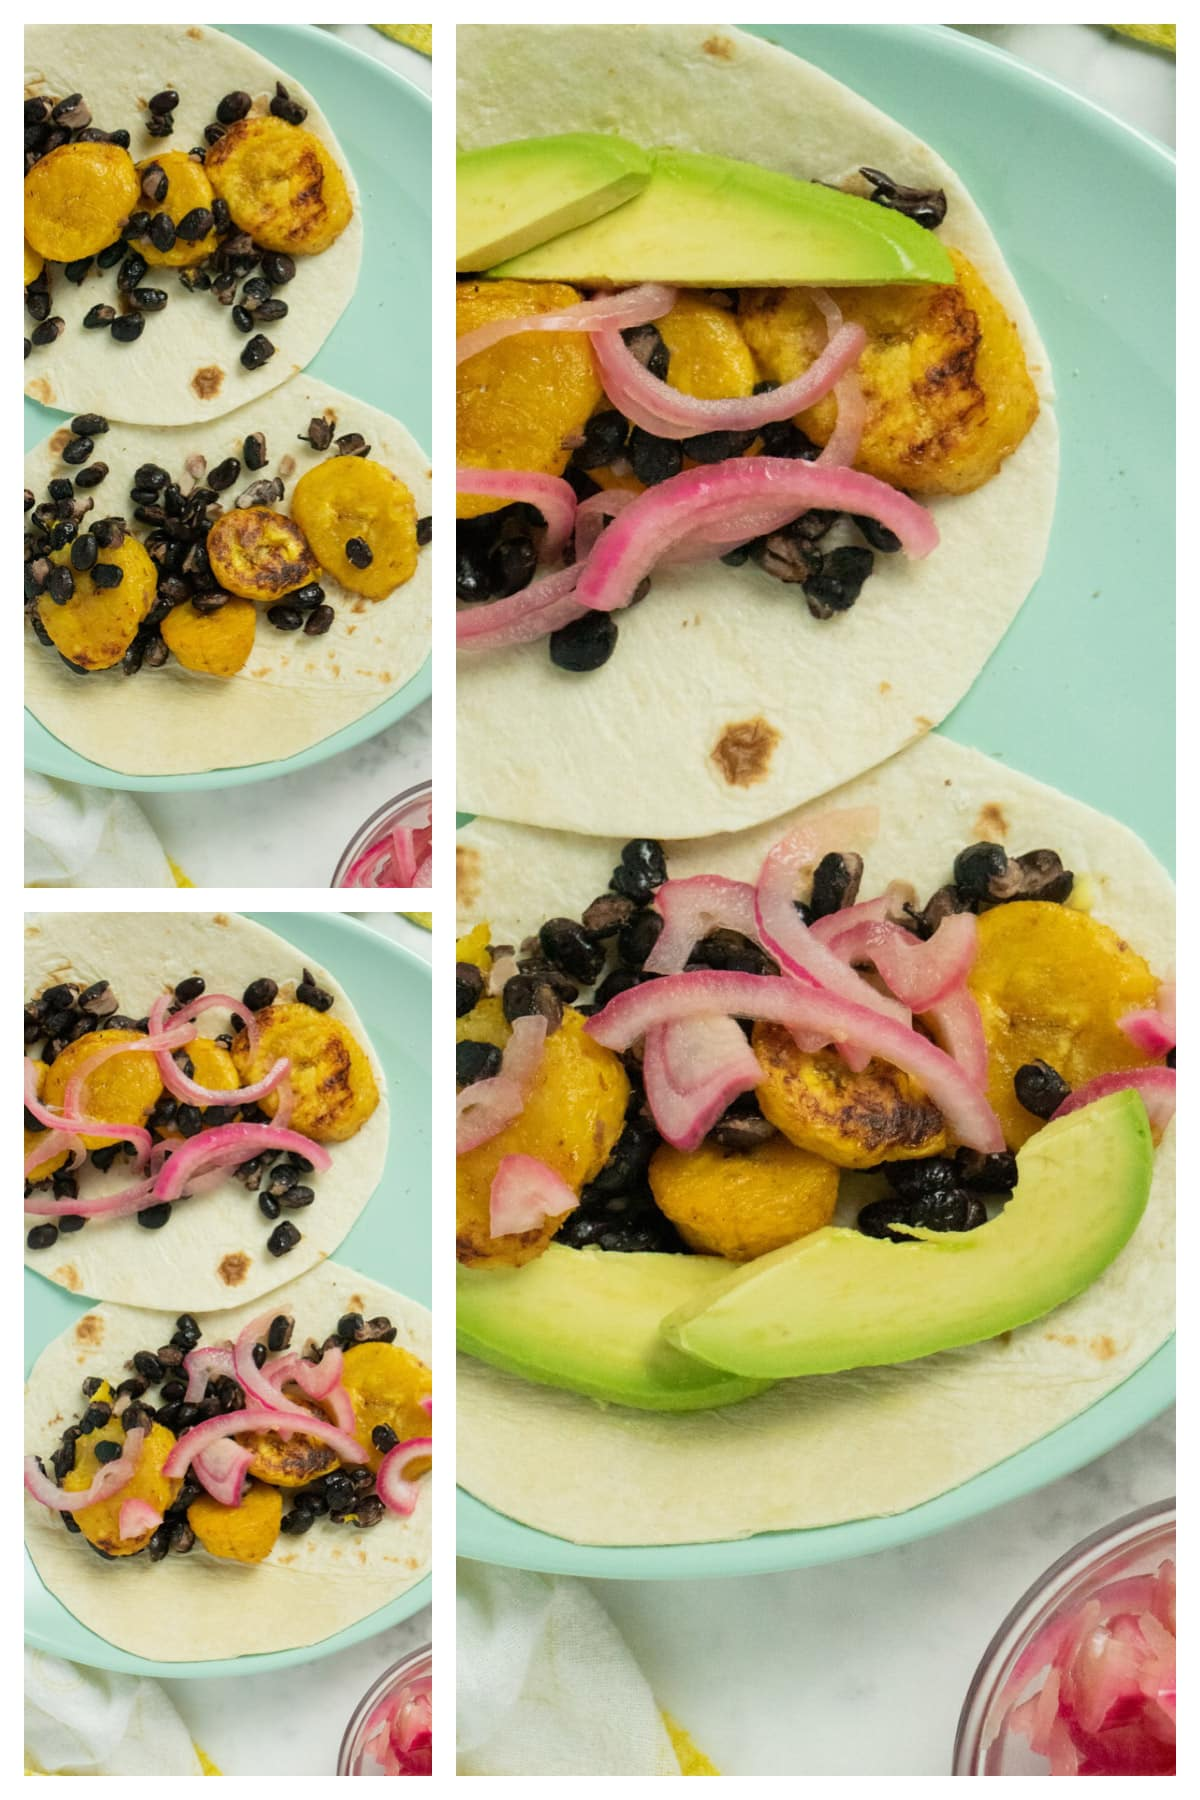 image collage showing the plantains and beans on the tortilla, then the tacos with the onions added and with the avocado slices